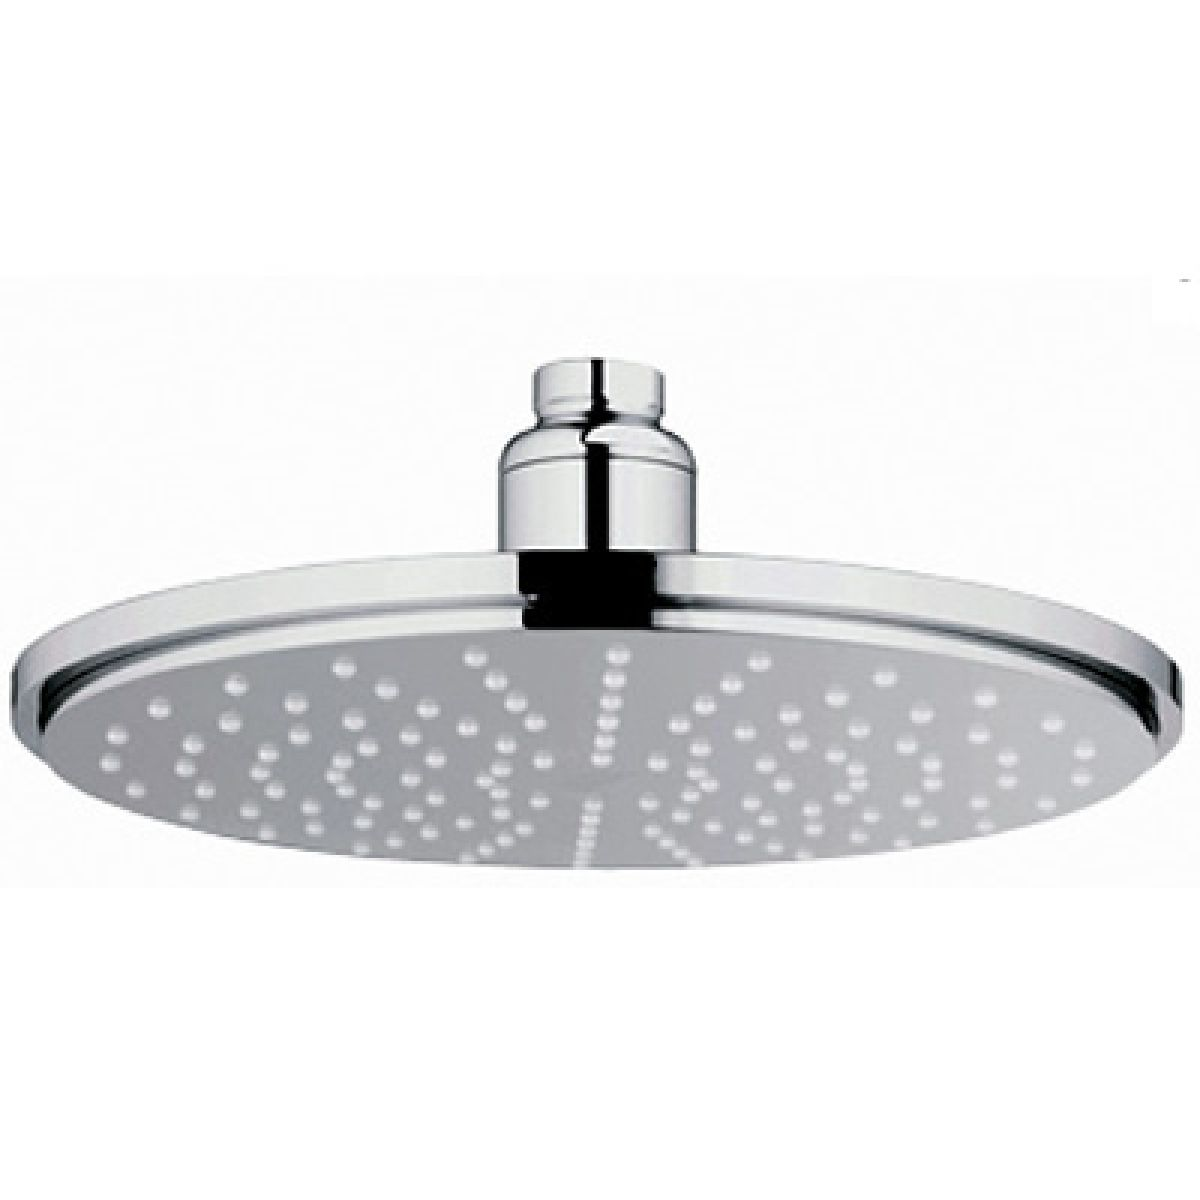 grohe rainshower 210mm modern shower head - Rain Shower Heads